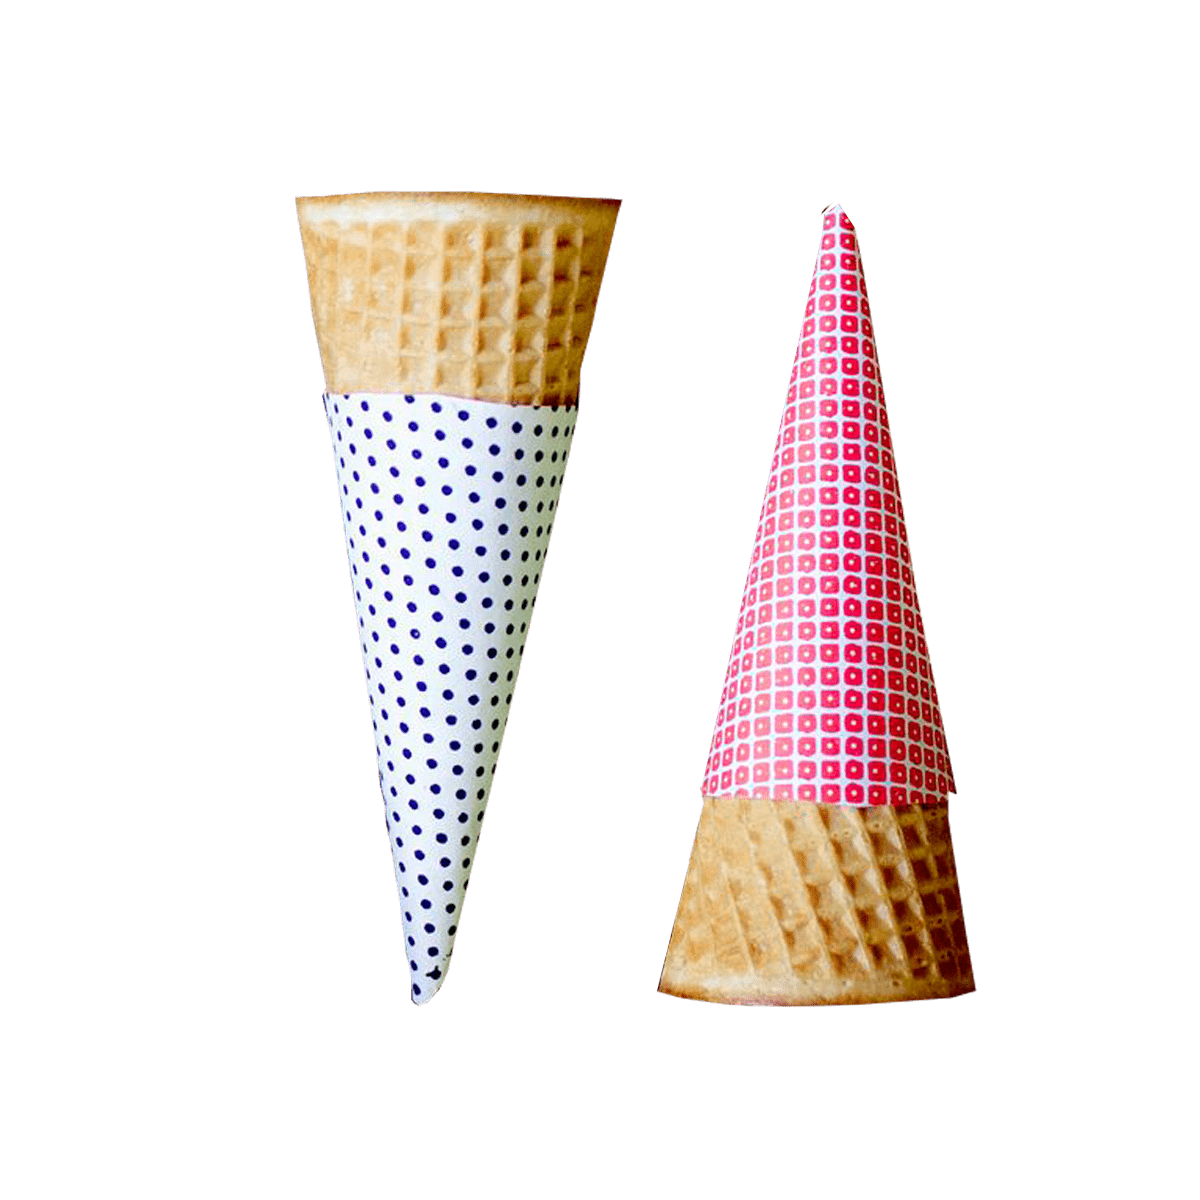 Custom Cone Sleeve | Printed Cone Sleeve Packaging | PlusPrinters